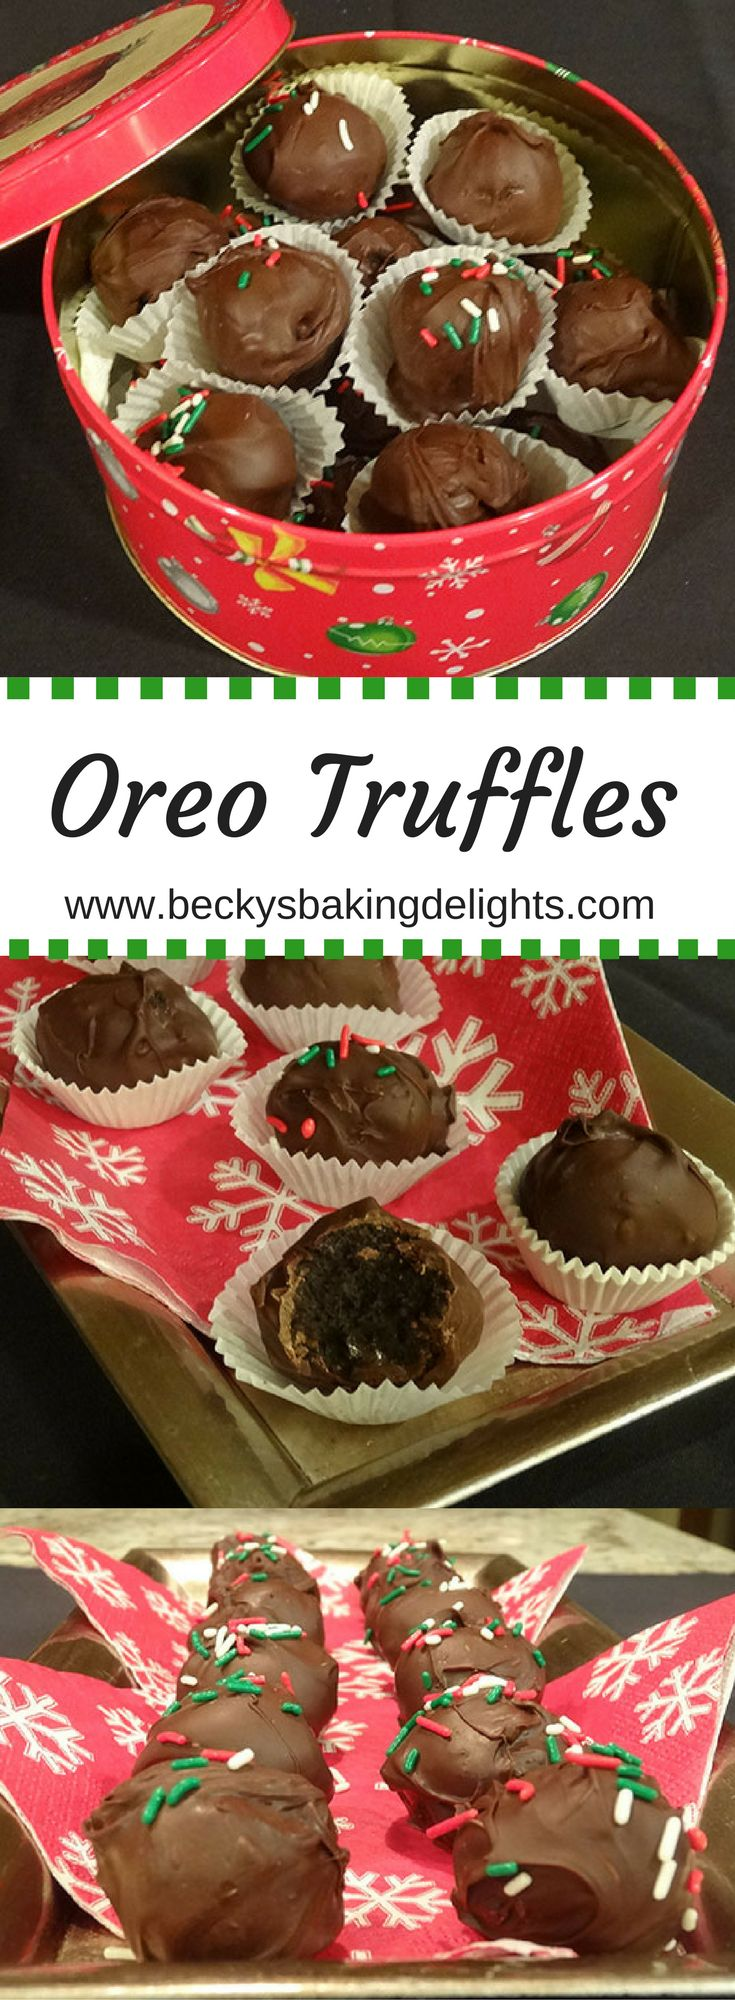 Oreo truffles have a soft chocolate center and are dipped in chocolate. Just three ingredients and no baking required!